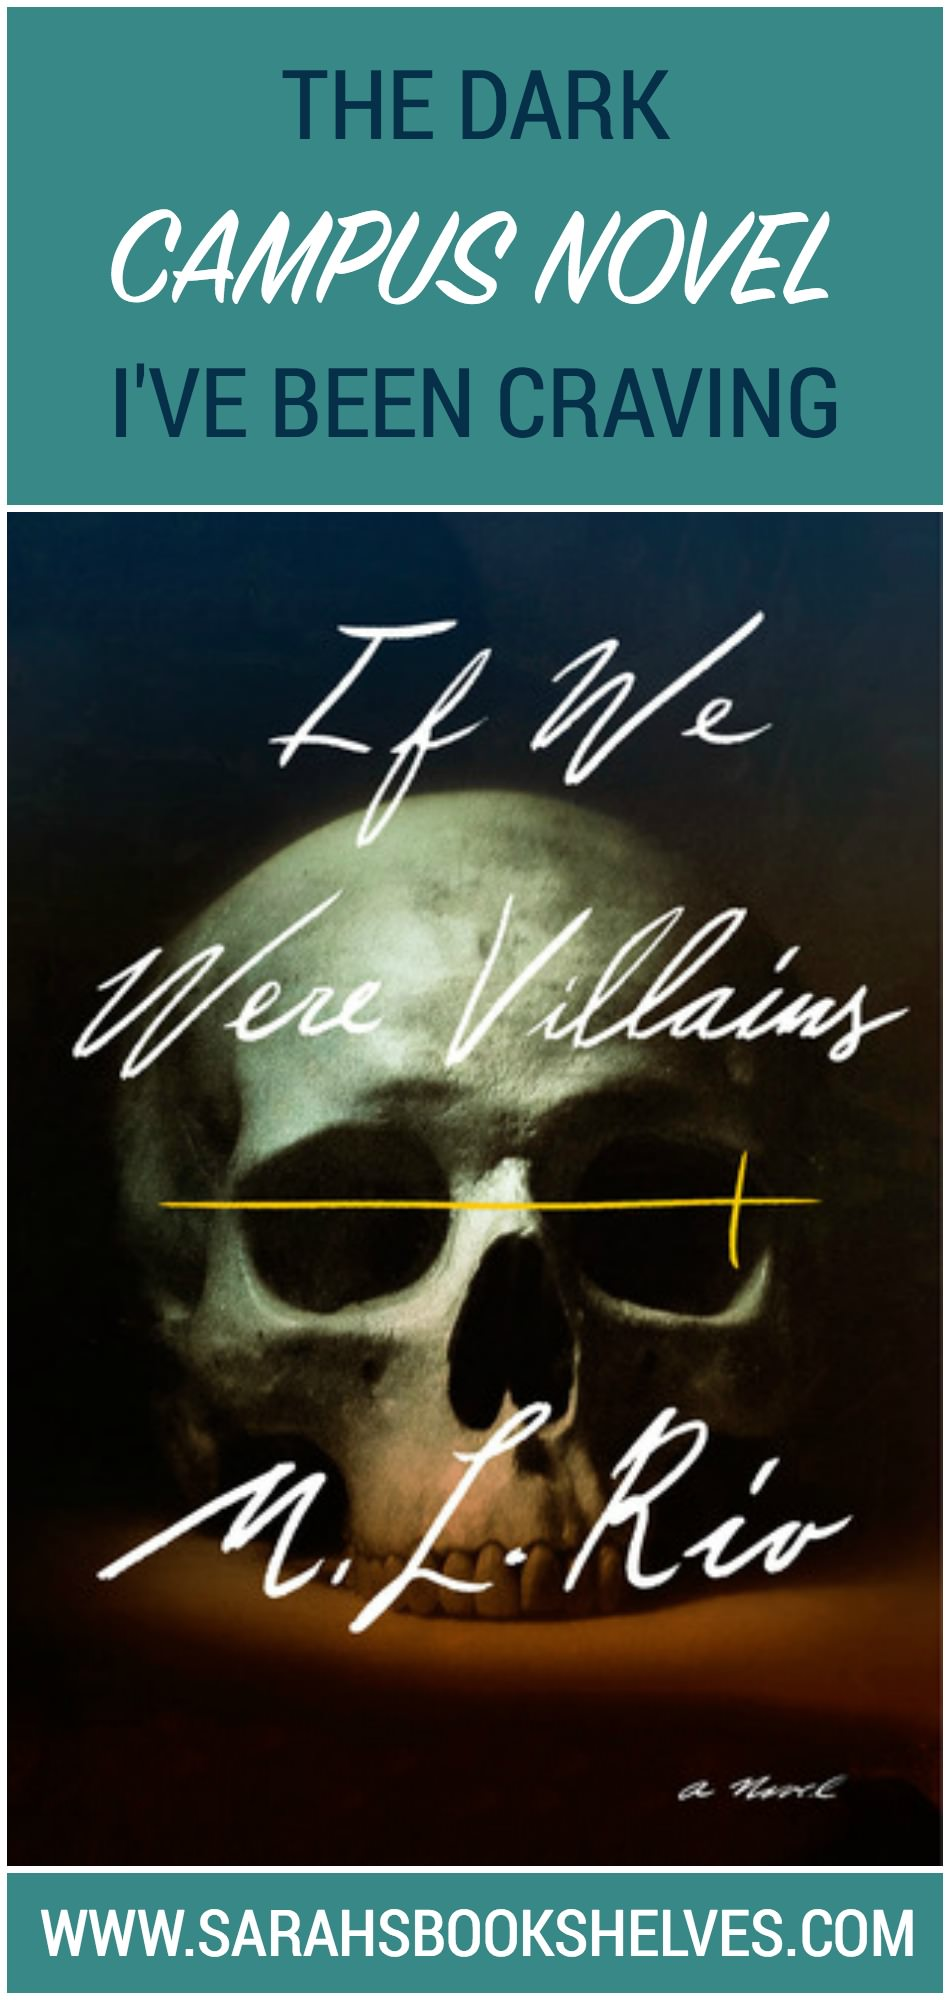 A perfect choice for fans of The Secret History, If We Were Villains by M.L. Rio is the dark campus novel I've been craving!